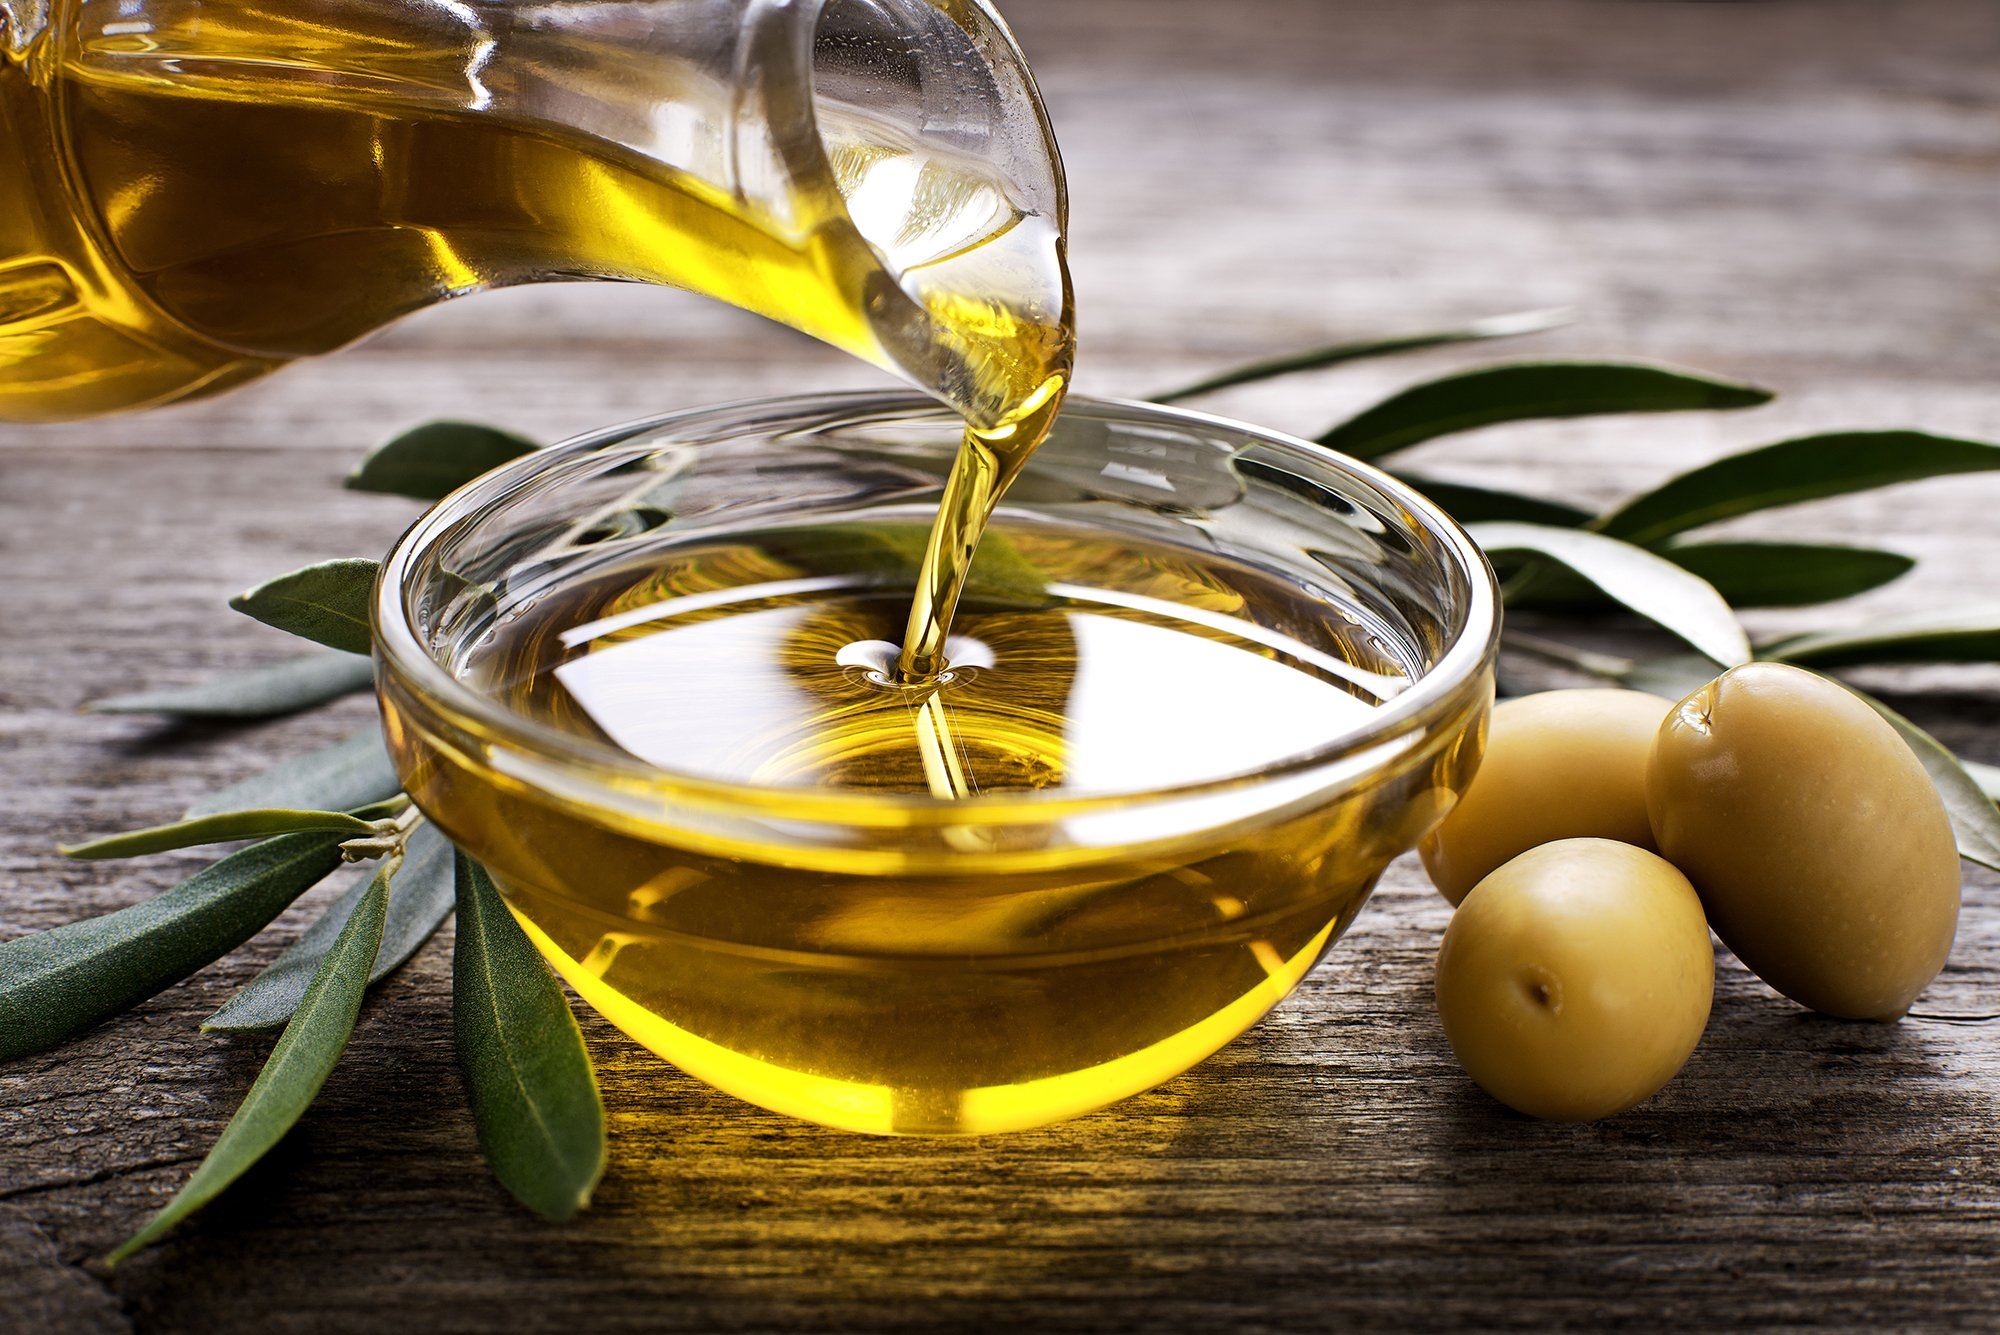 7 Amazing Health Benefits of Olive Oil + Emerging Research